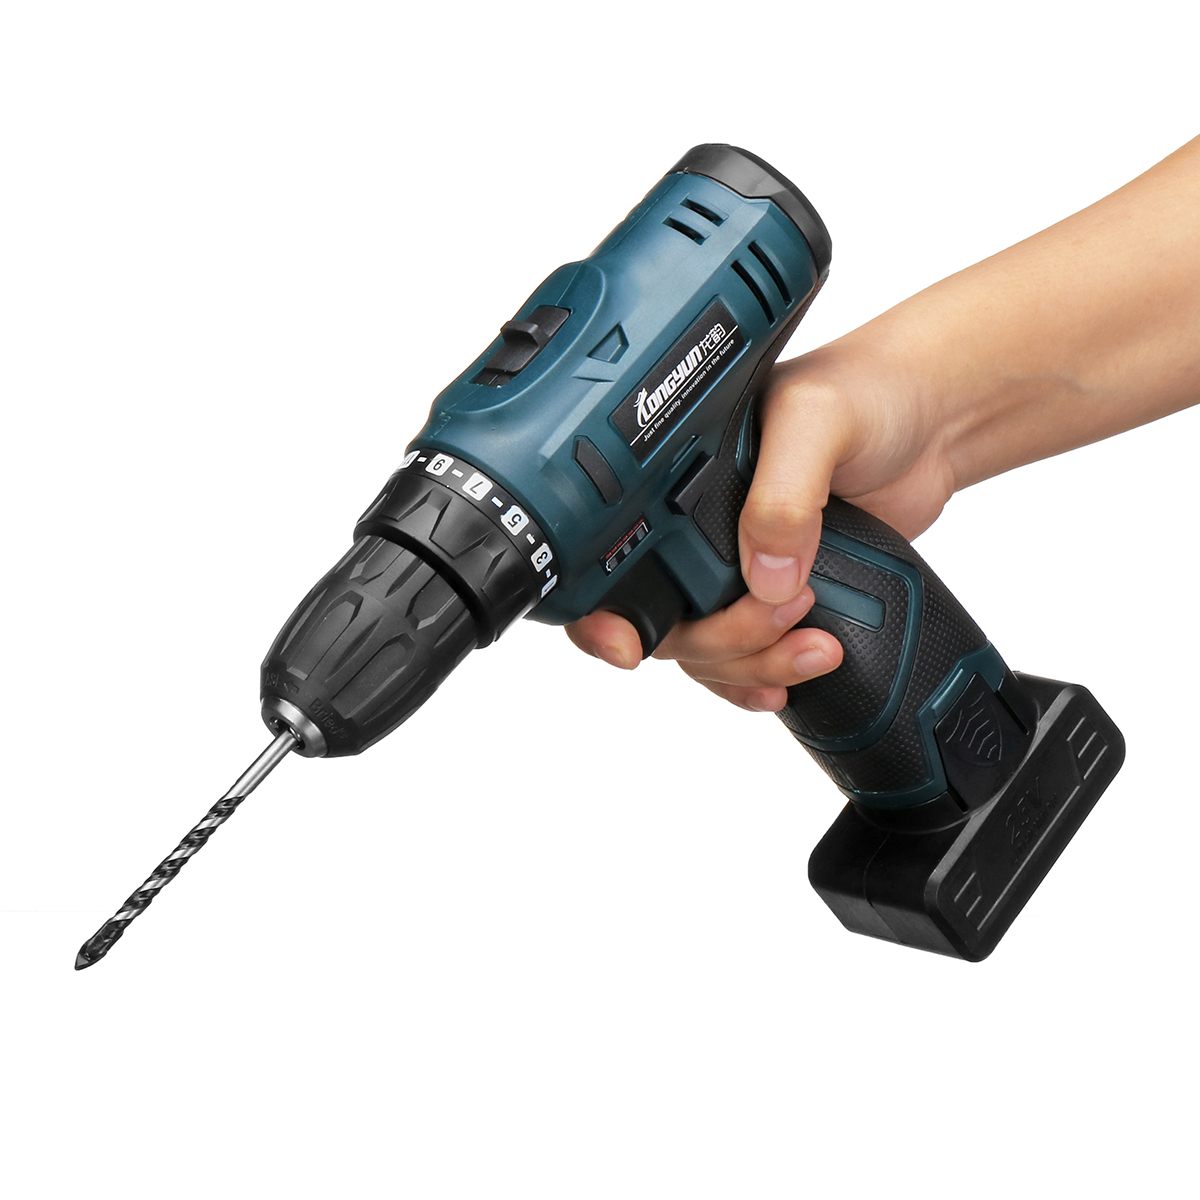 25V LED Light Cordless Power Drill Dual Speed Li-ion Battery Electric Screwdriver Waterproof Motor Fast Charging